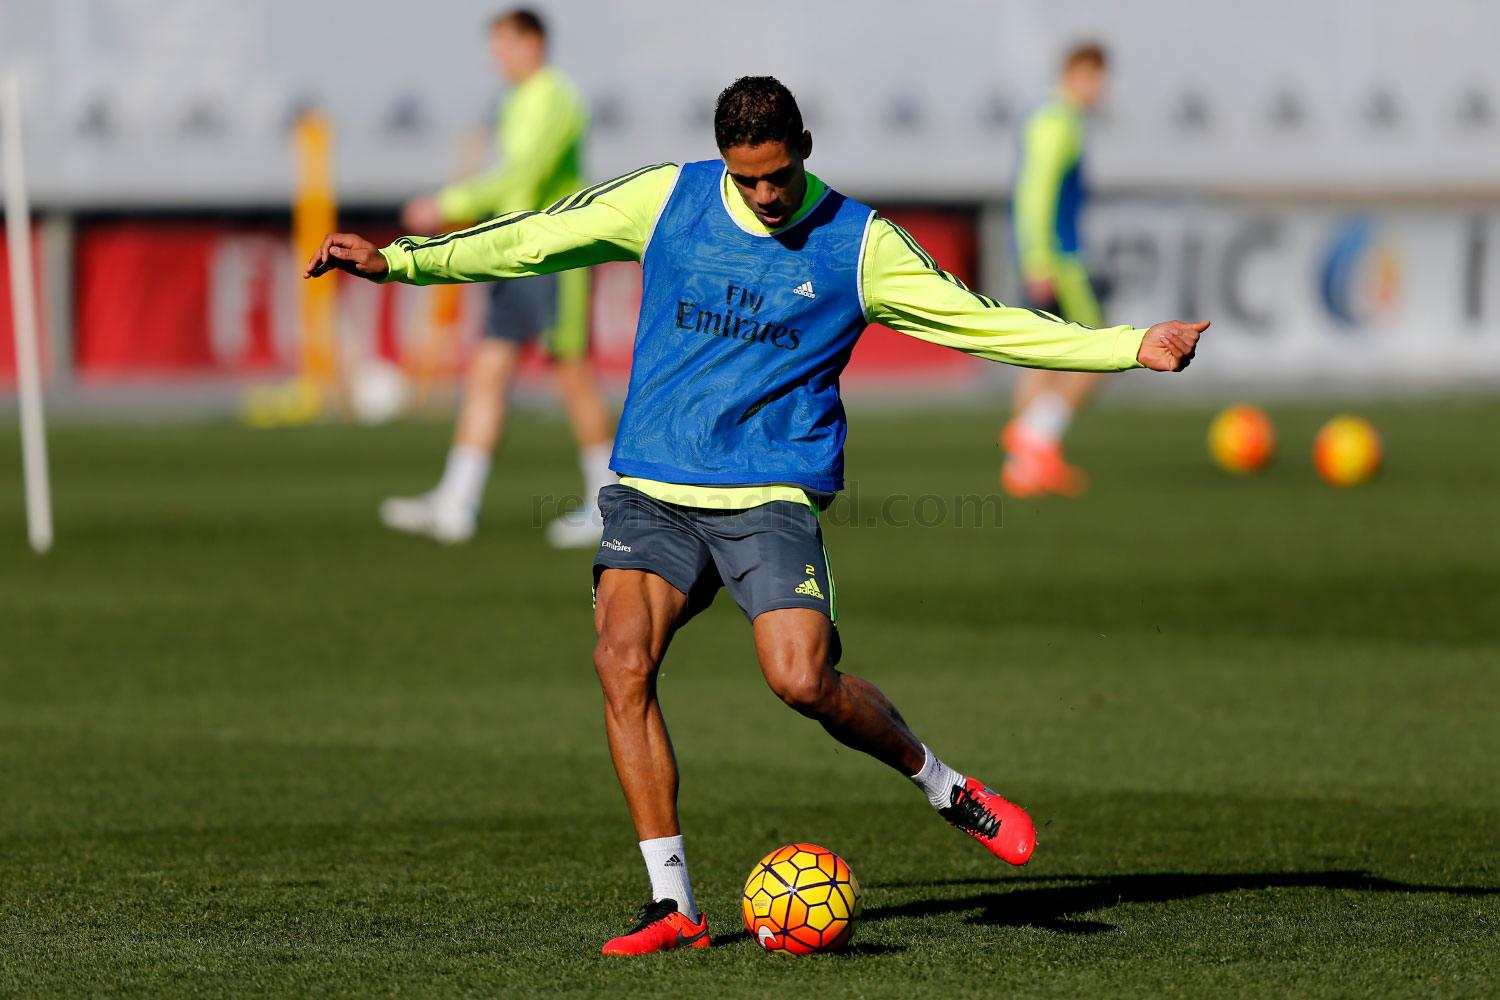 Real Madrid - Entrenamiento del Real Madrid - 04-02-2016